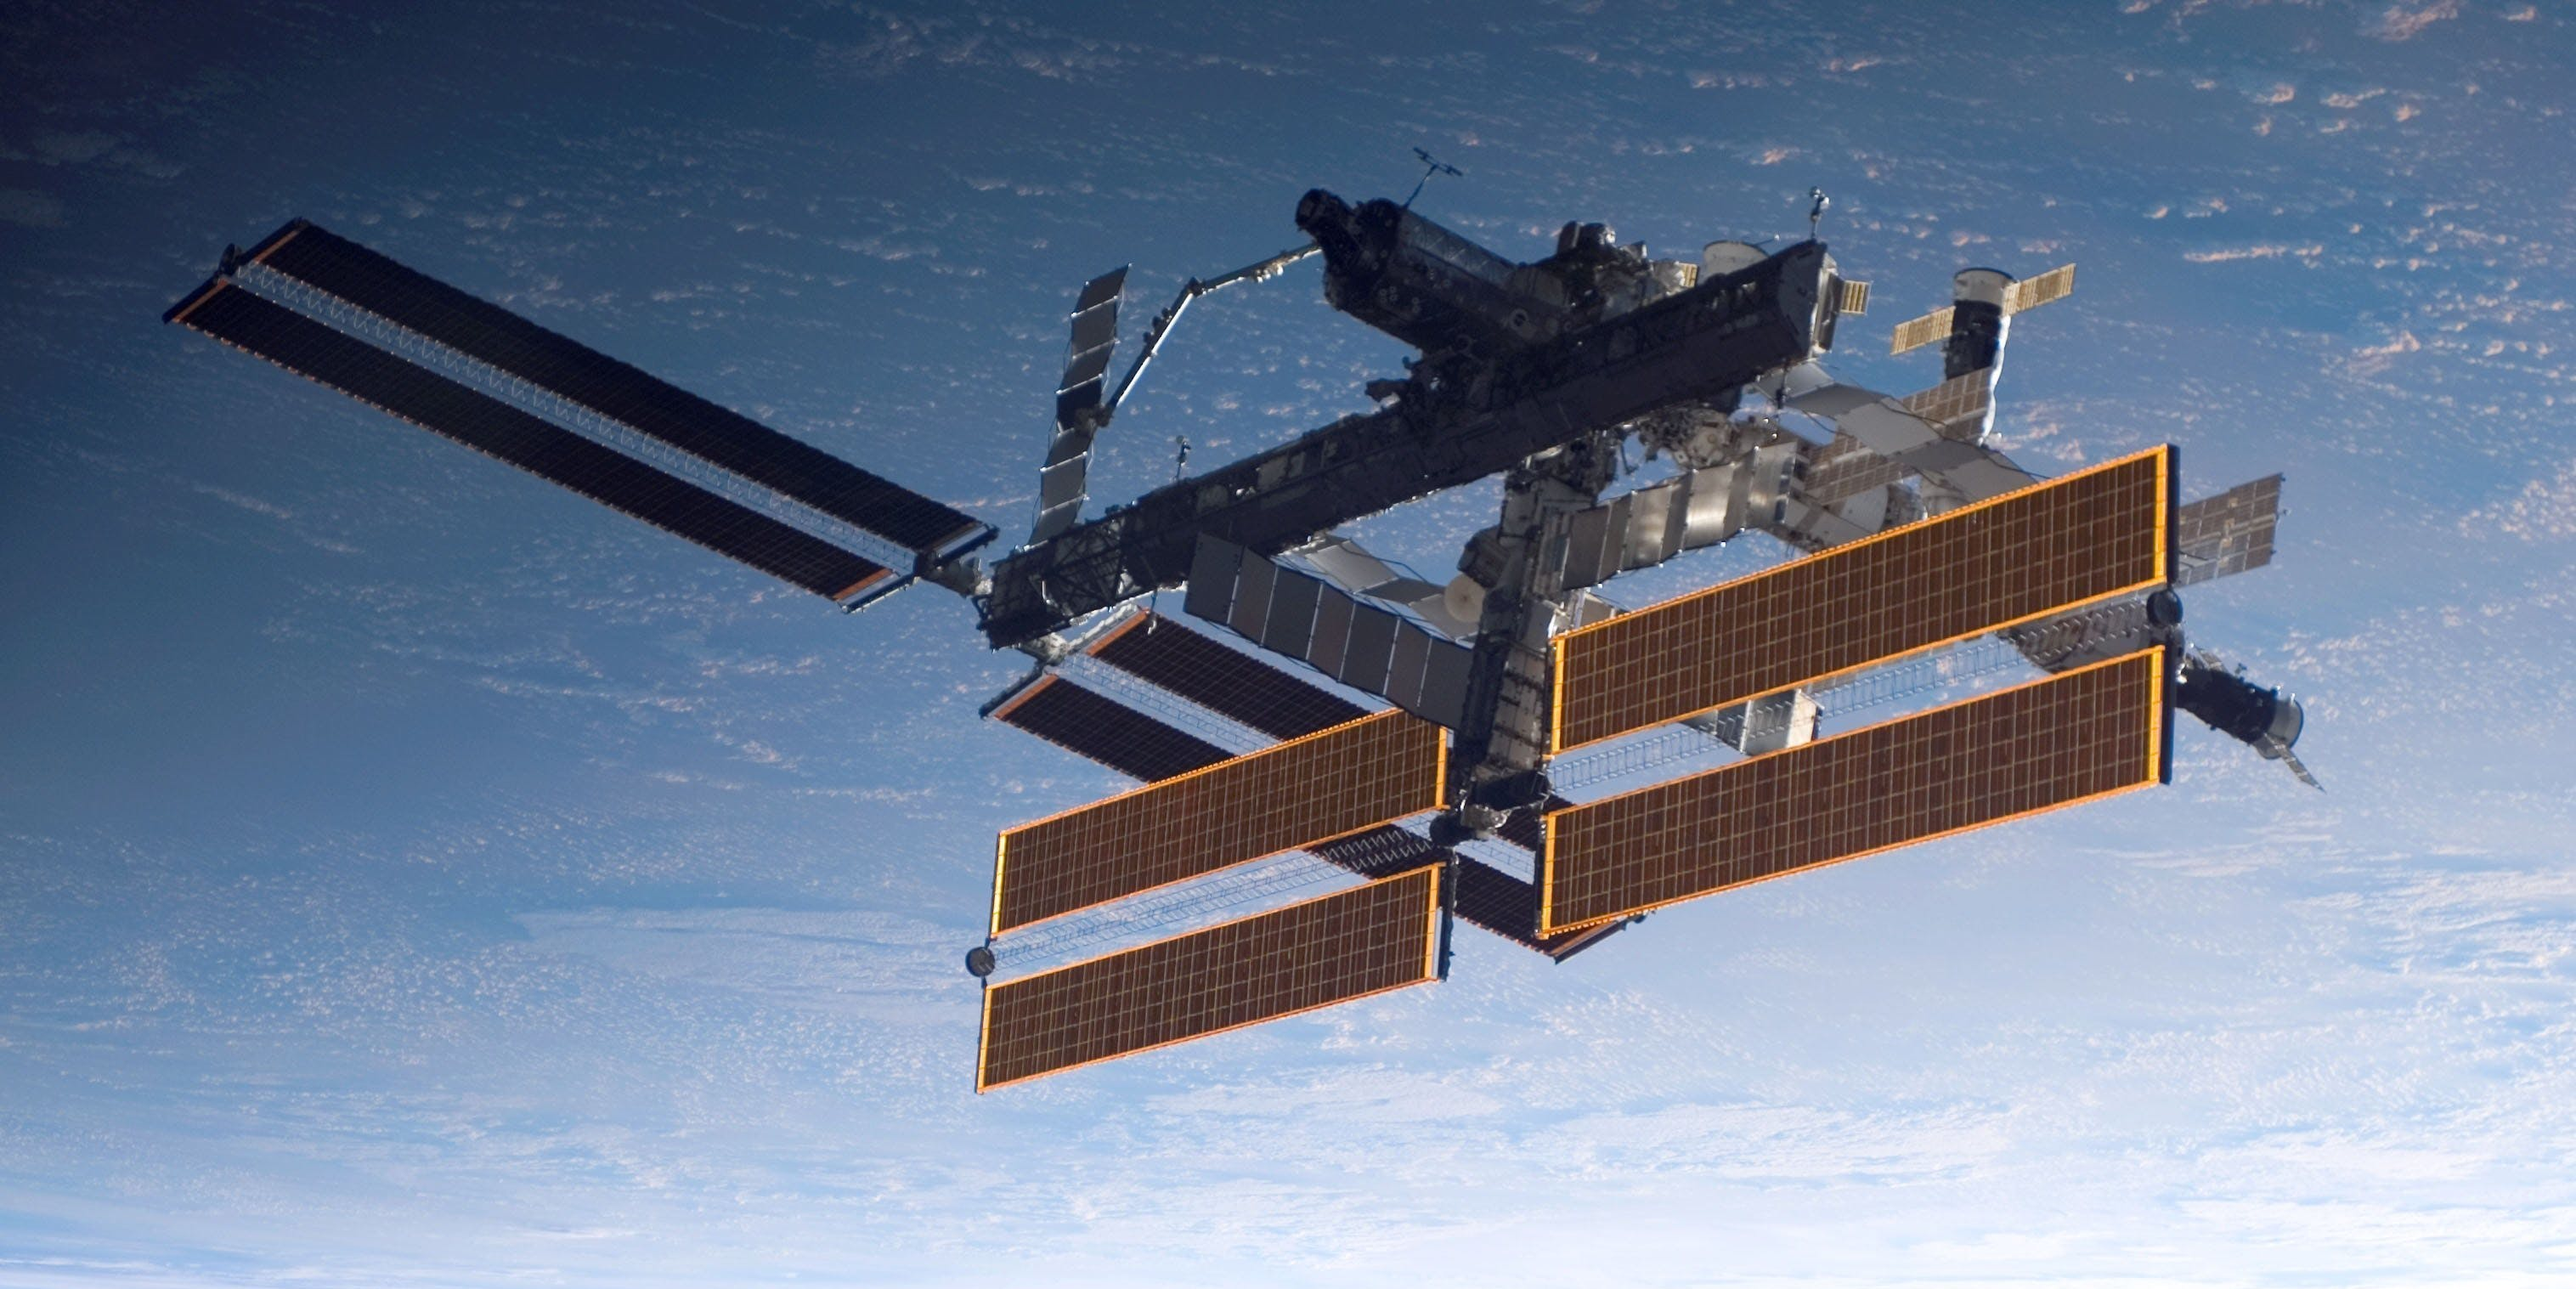 IN SPACE - SEPTEMBER 17: In this handout photo provided by NASA, the International Space Station is seen over a blue and white Earth, taken shortly after the Space Shuttle Atlantis undocked from the orbital outpost at 7:50 a.m. CDT. The unlinking completed six days, two hours and two minutes of joint operations with the station crew. Atlantis left the station with a new, second pair of 240-foot solar wings, attached to a new 17.5-ton section of truss with batteries, electronics and a giant rotating joint. The new solar arrays eventually will double the station's onboard power when their electrical systems are brought online during the next shuttle flight, planned for launch in December.  (Photo by NASA via Getty Images)